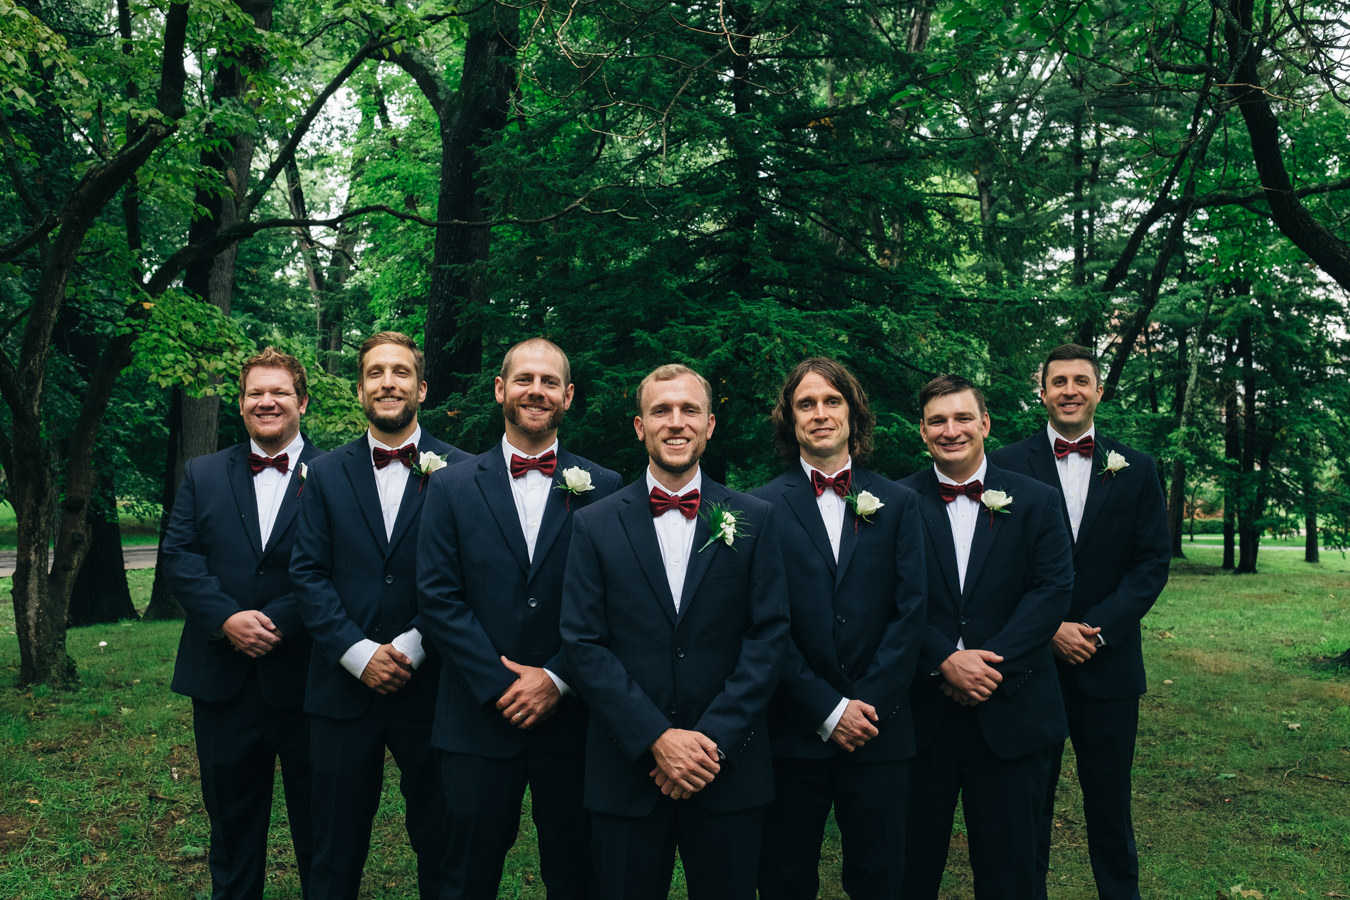 Groomsmen in black suits and merlot bow ties.